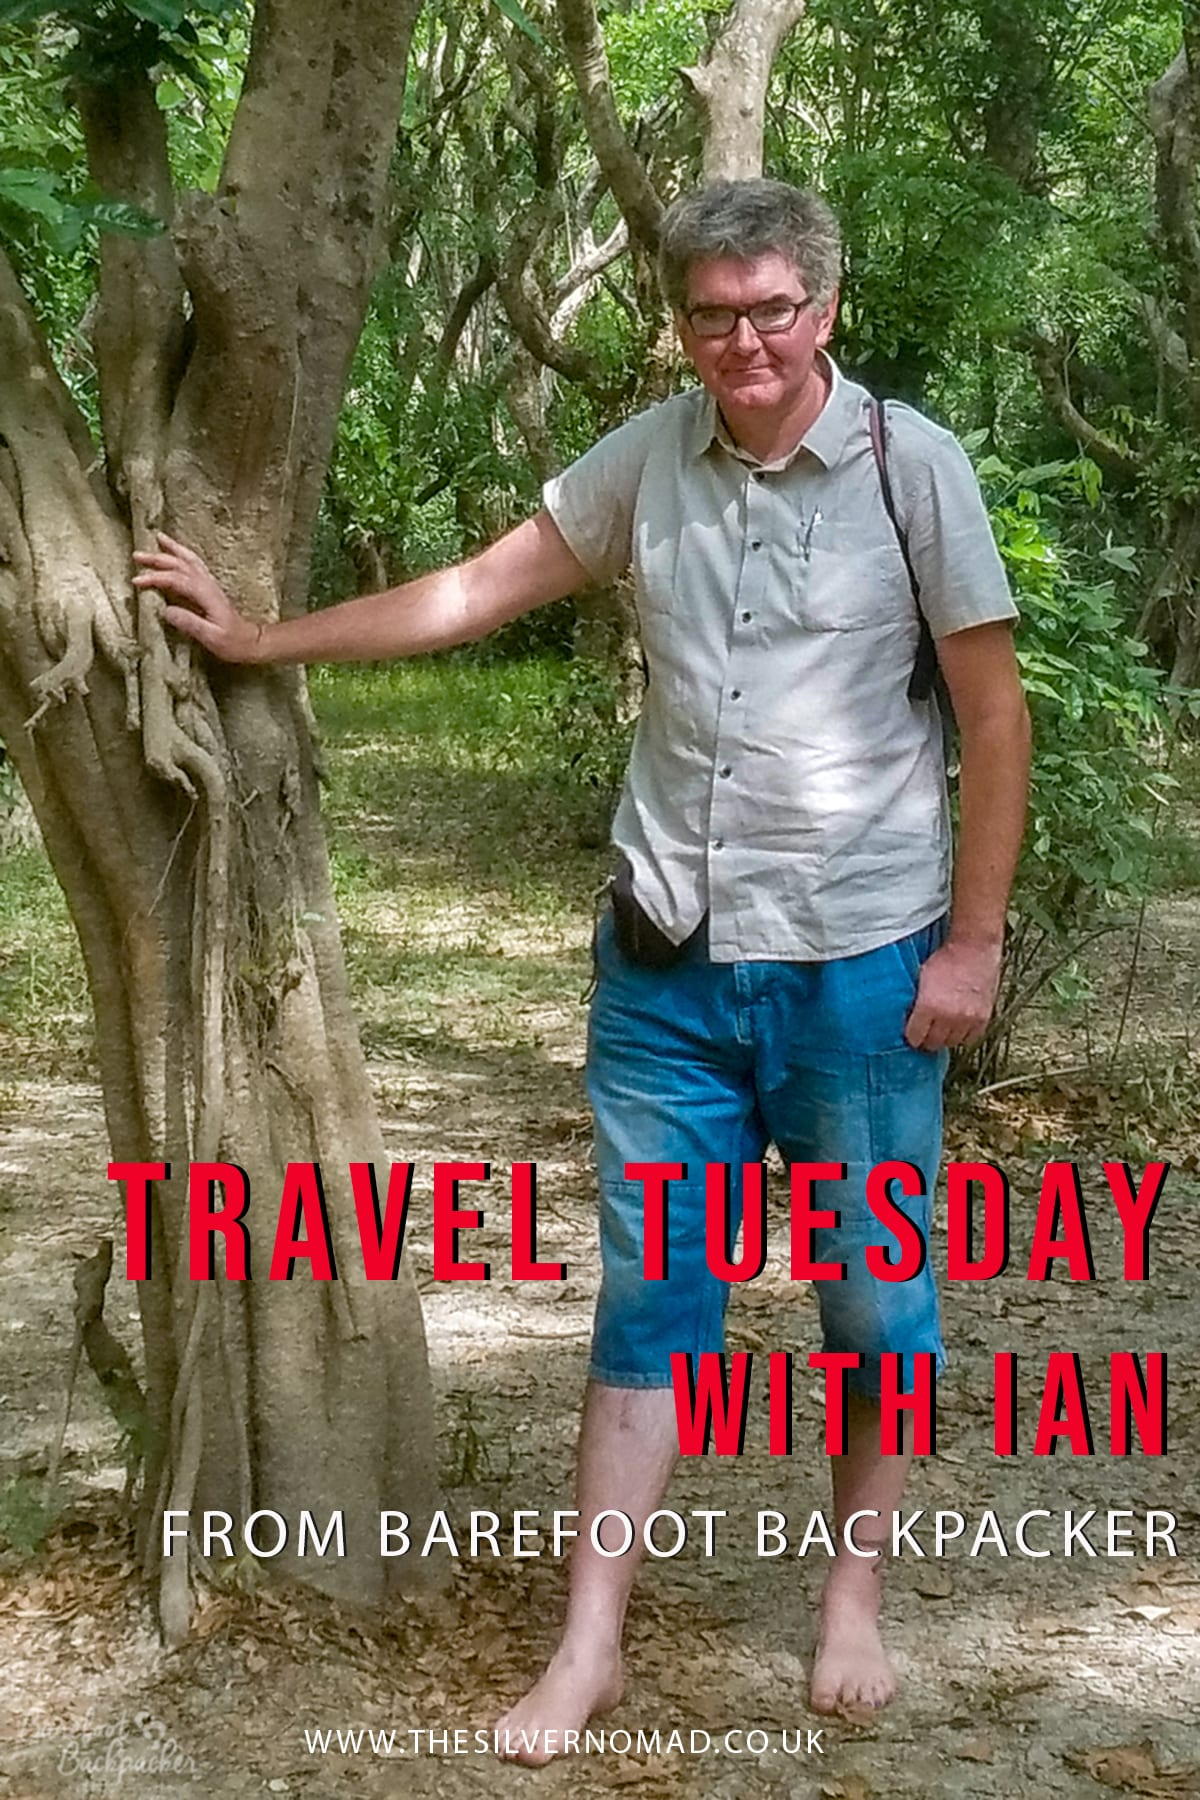 Travel Tuesday with Barefoot Backpacker. Ian answers questions on his travel style, tips and favourite destinations to travel to.